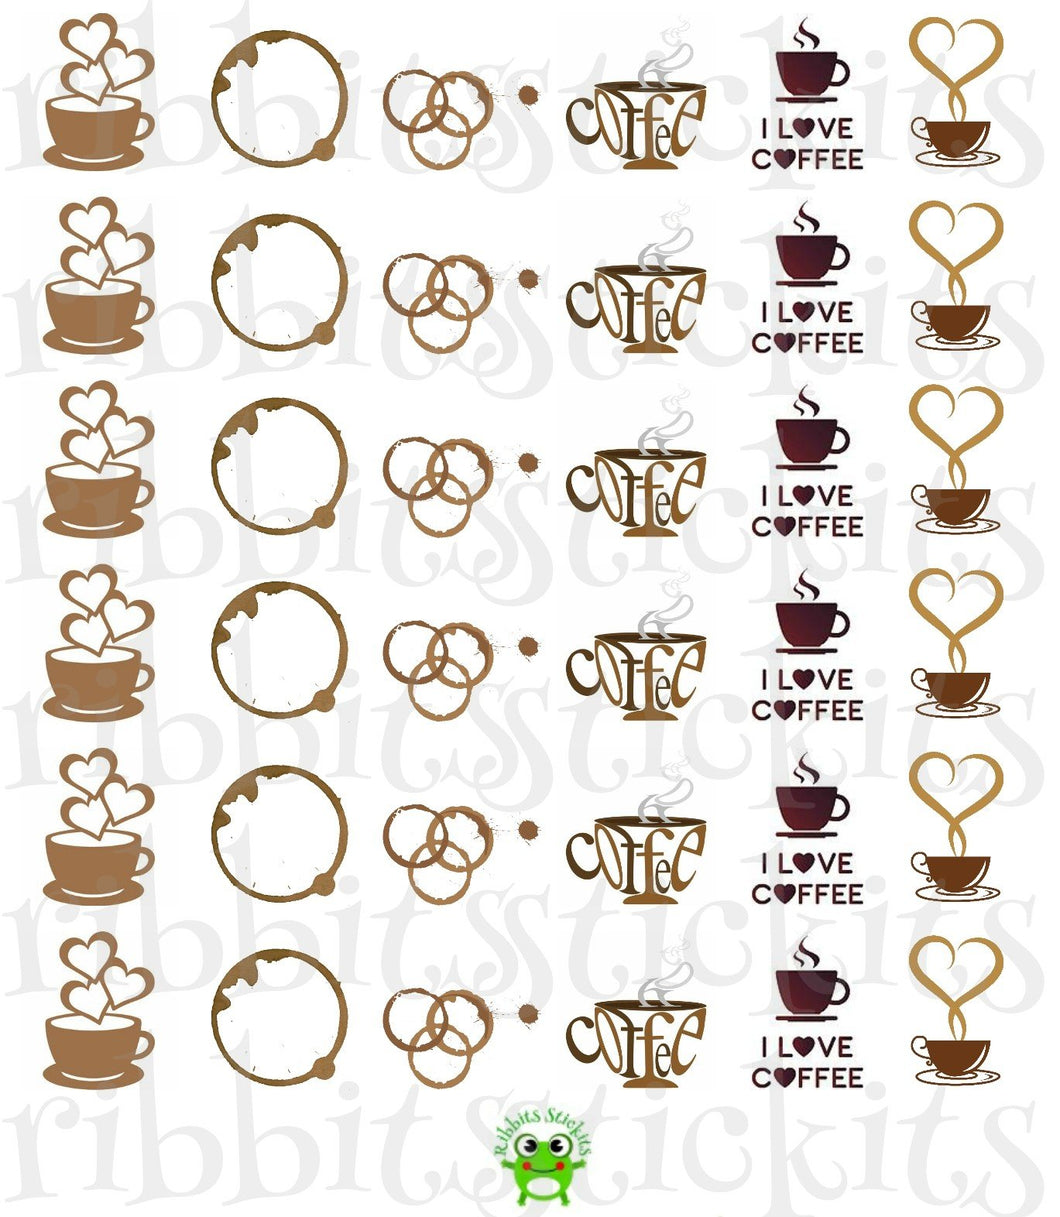 Rings of Coffee